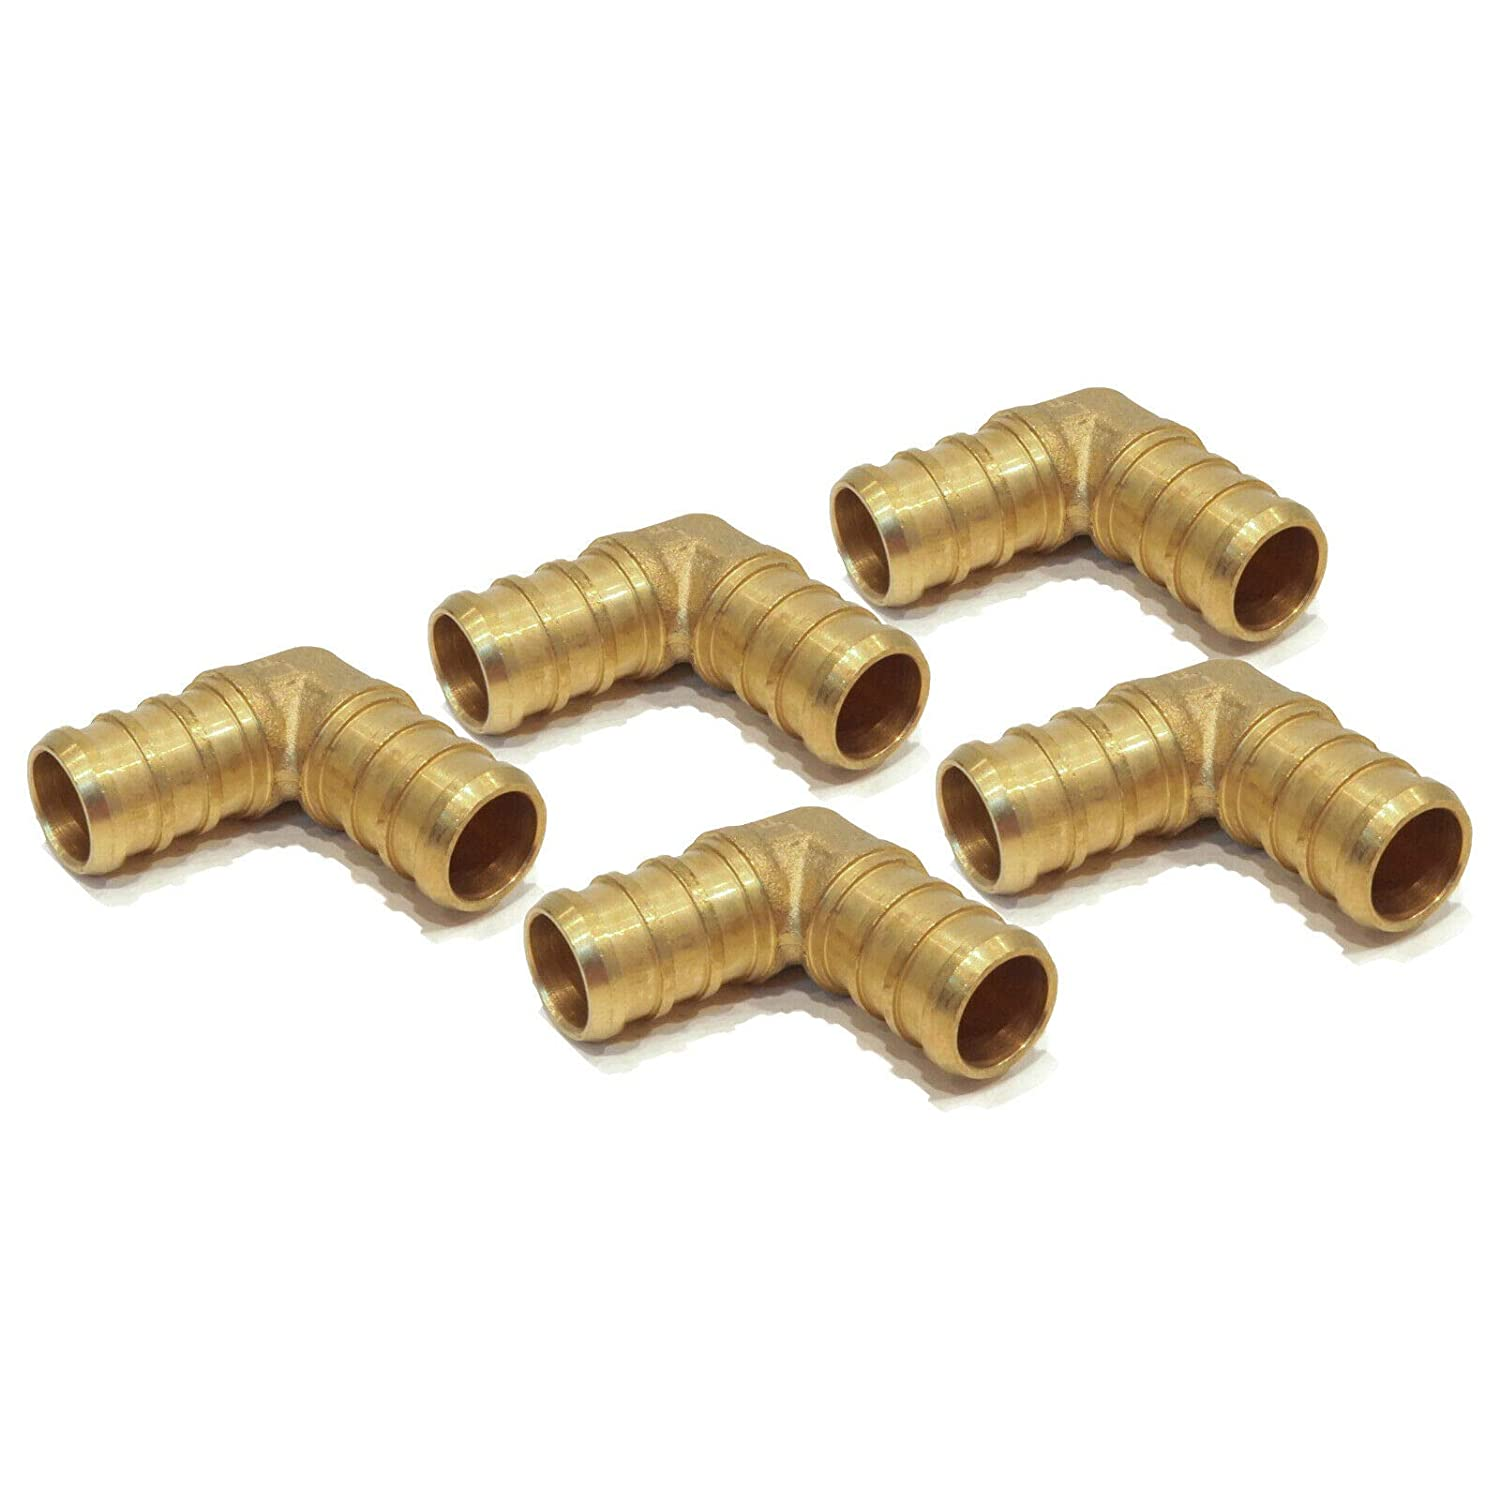 """2 New 3//4/"""" x 3//4/"""" PEX 90 DEGREE BRASS ELBOWS Fitting Barbed Coupler LEAD FREE"""